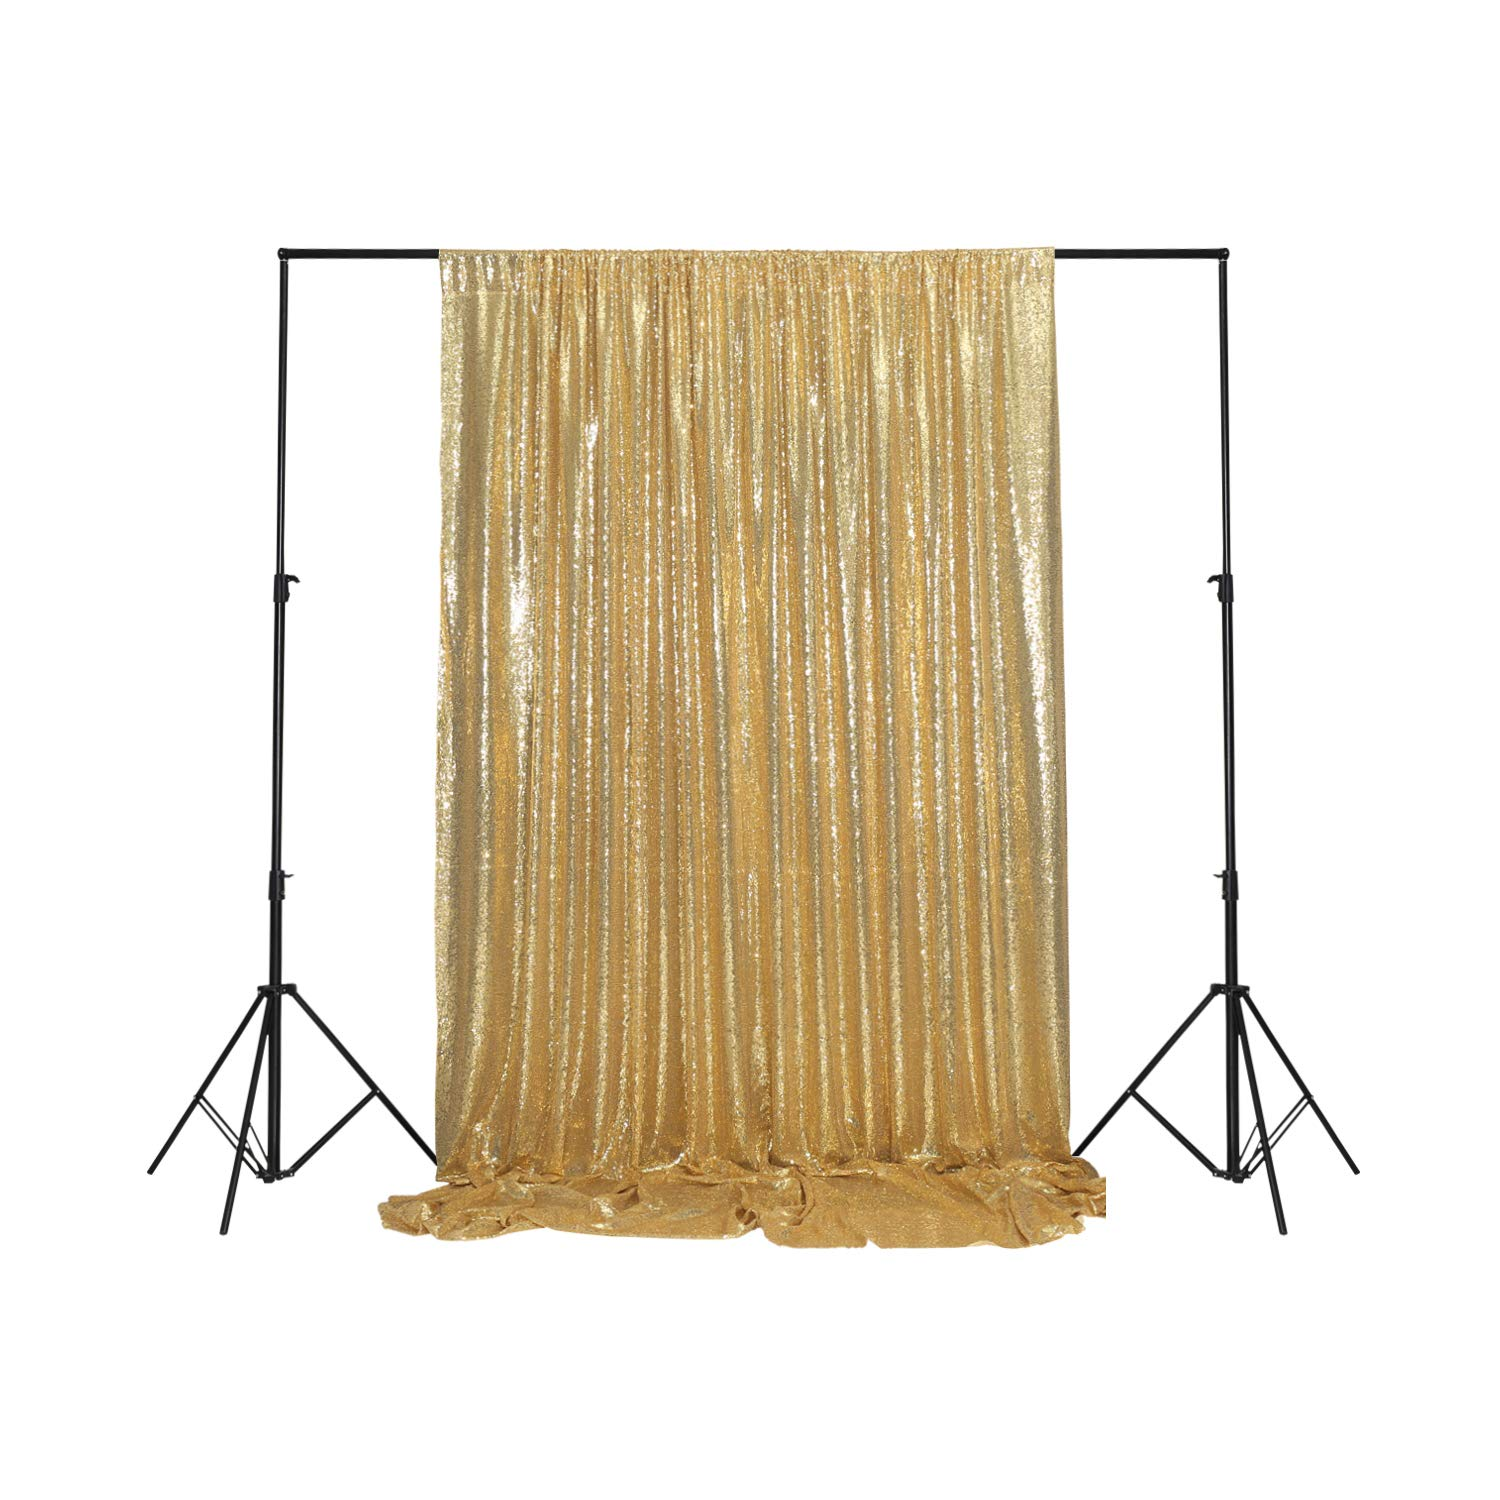 Sparkly Gold PartyDelight Sequin Backdrop, Photography, Christmas Backdrop, 20Ft x 10Ft by PartyDelight